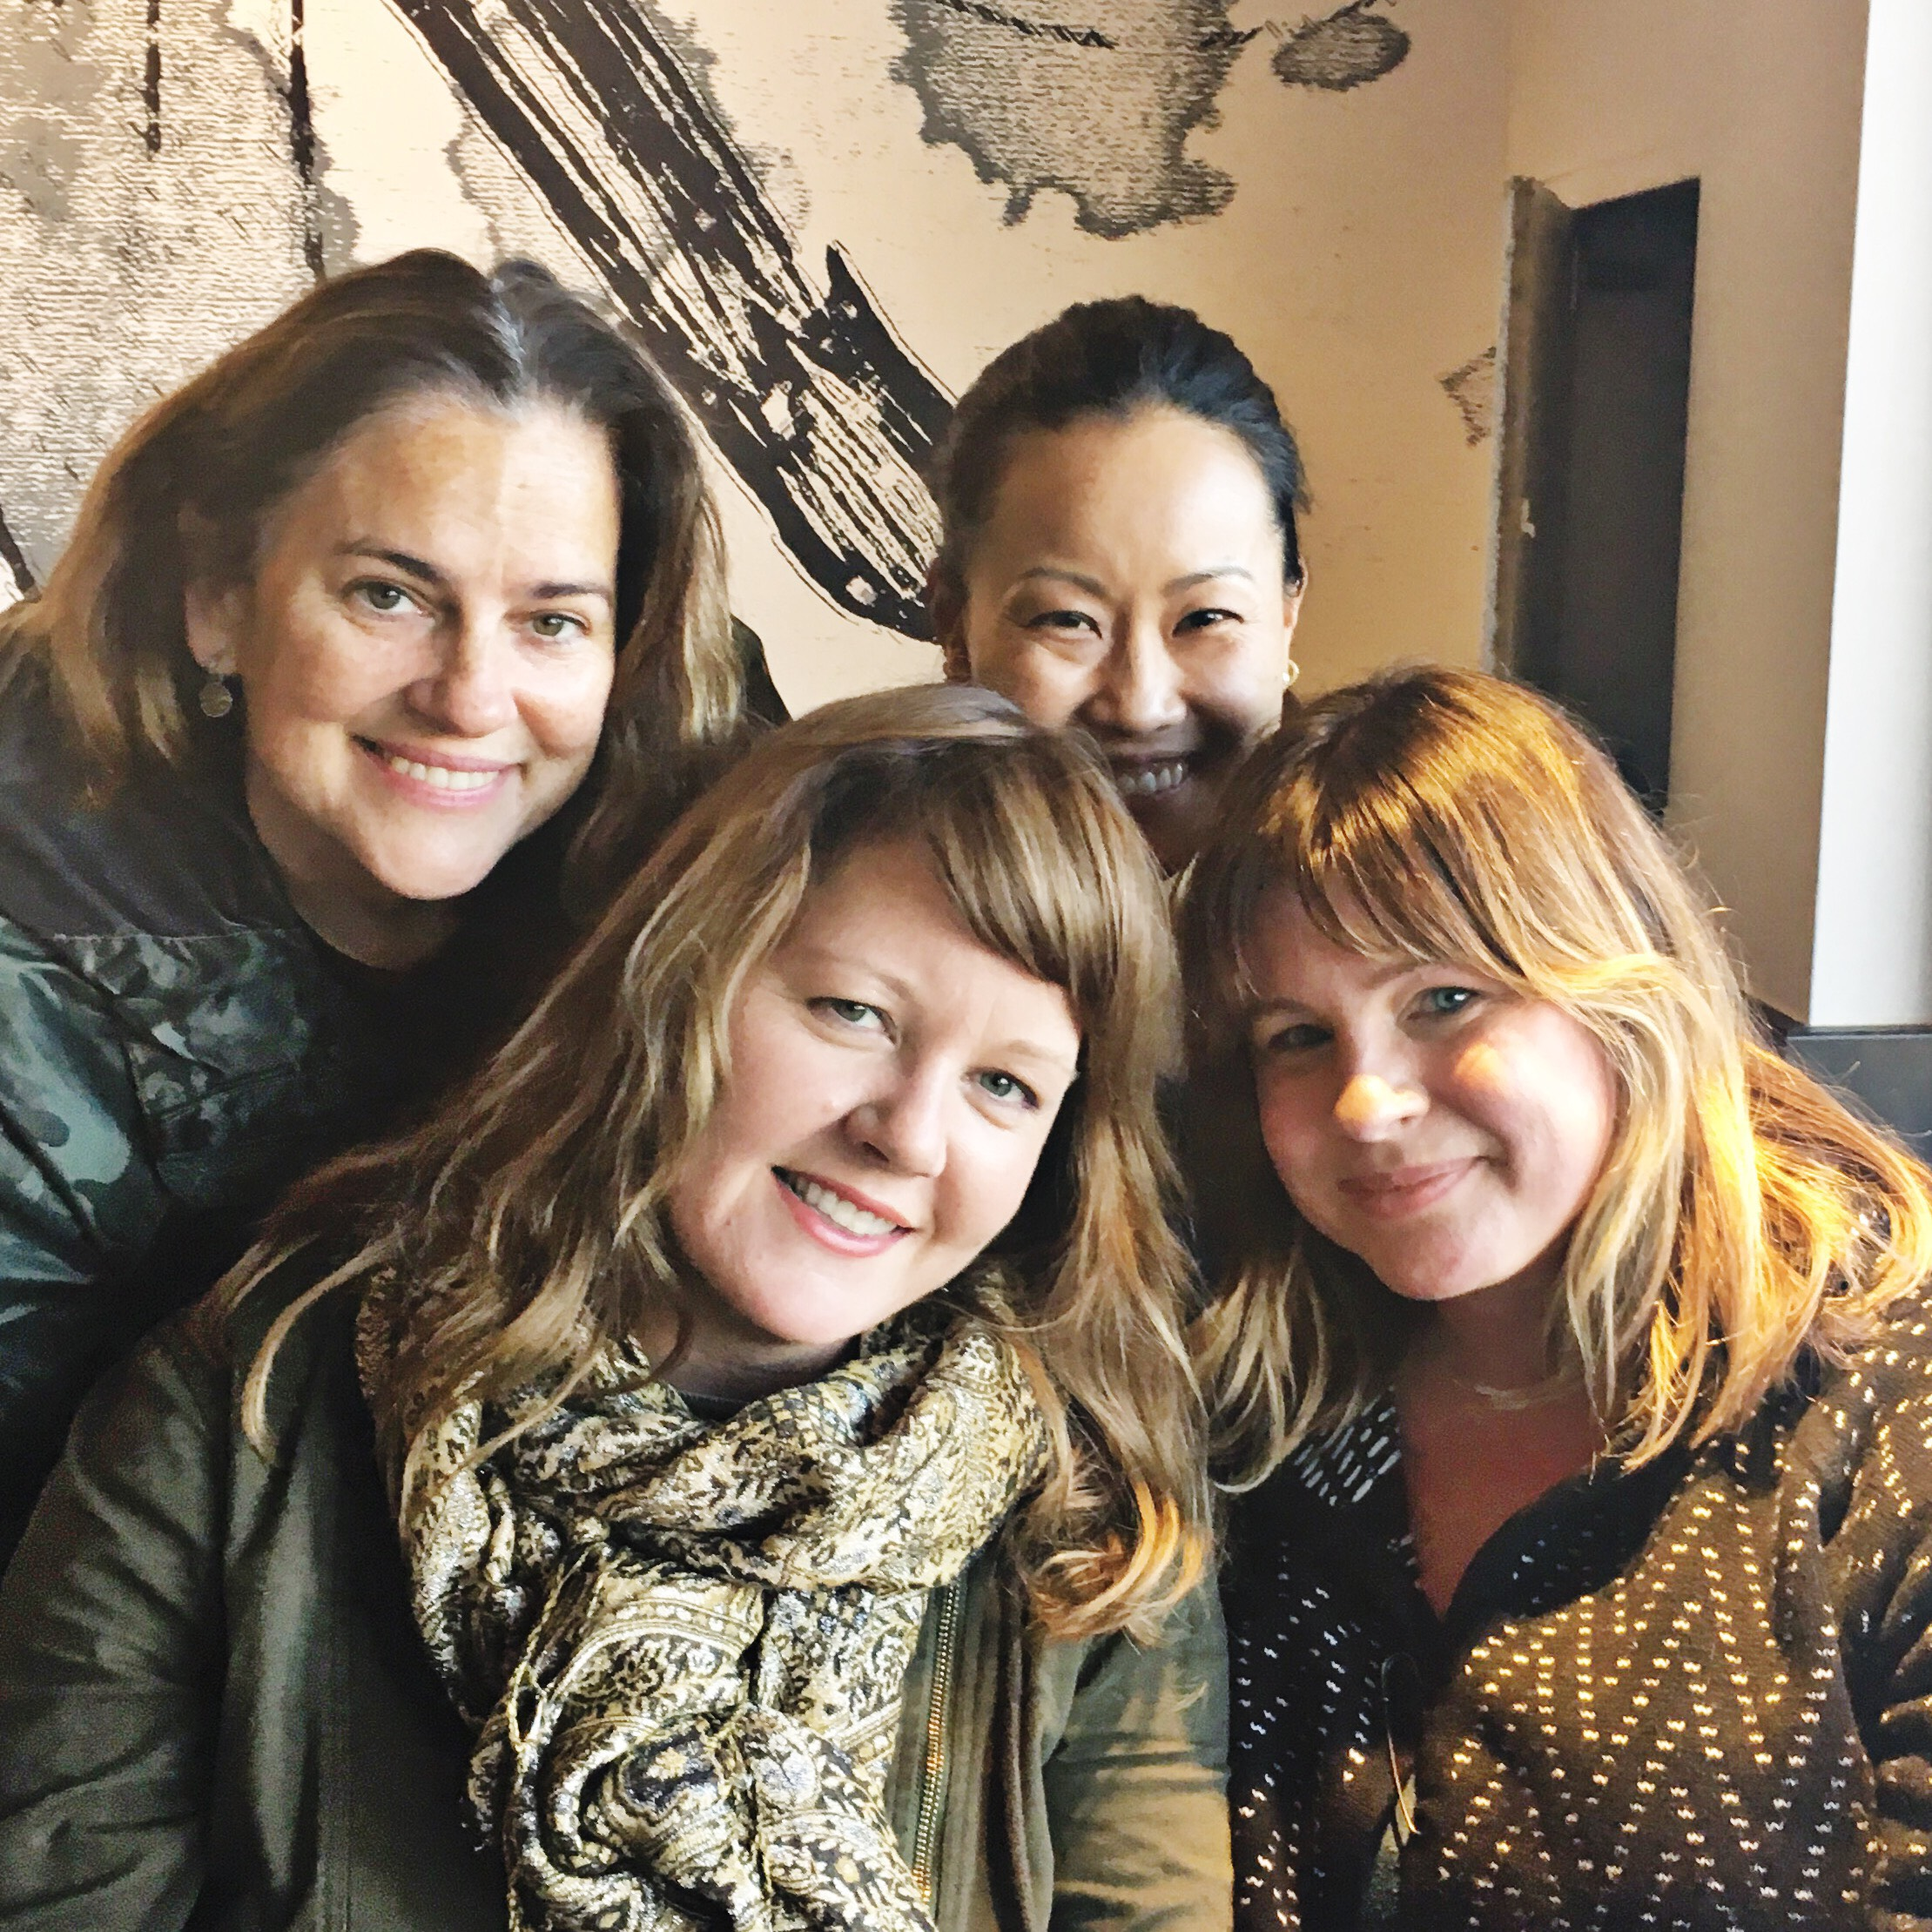 The Welcome Committee - Ryan Silvers, Megan Sullivan, Angela Han, and Brigitta Dougherty Feel free to email us any questions at welcome@miralomasf.com